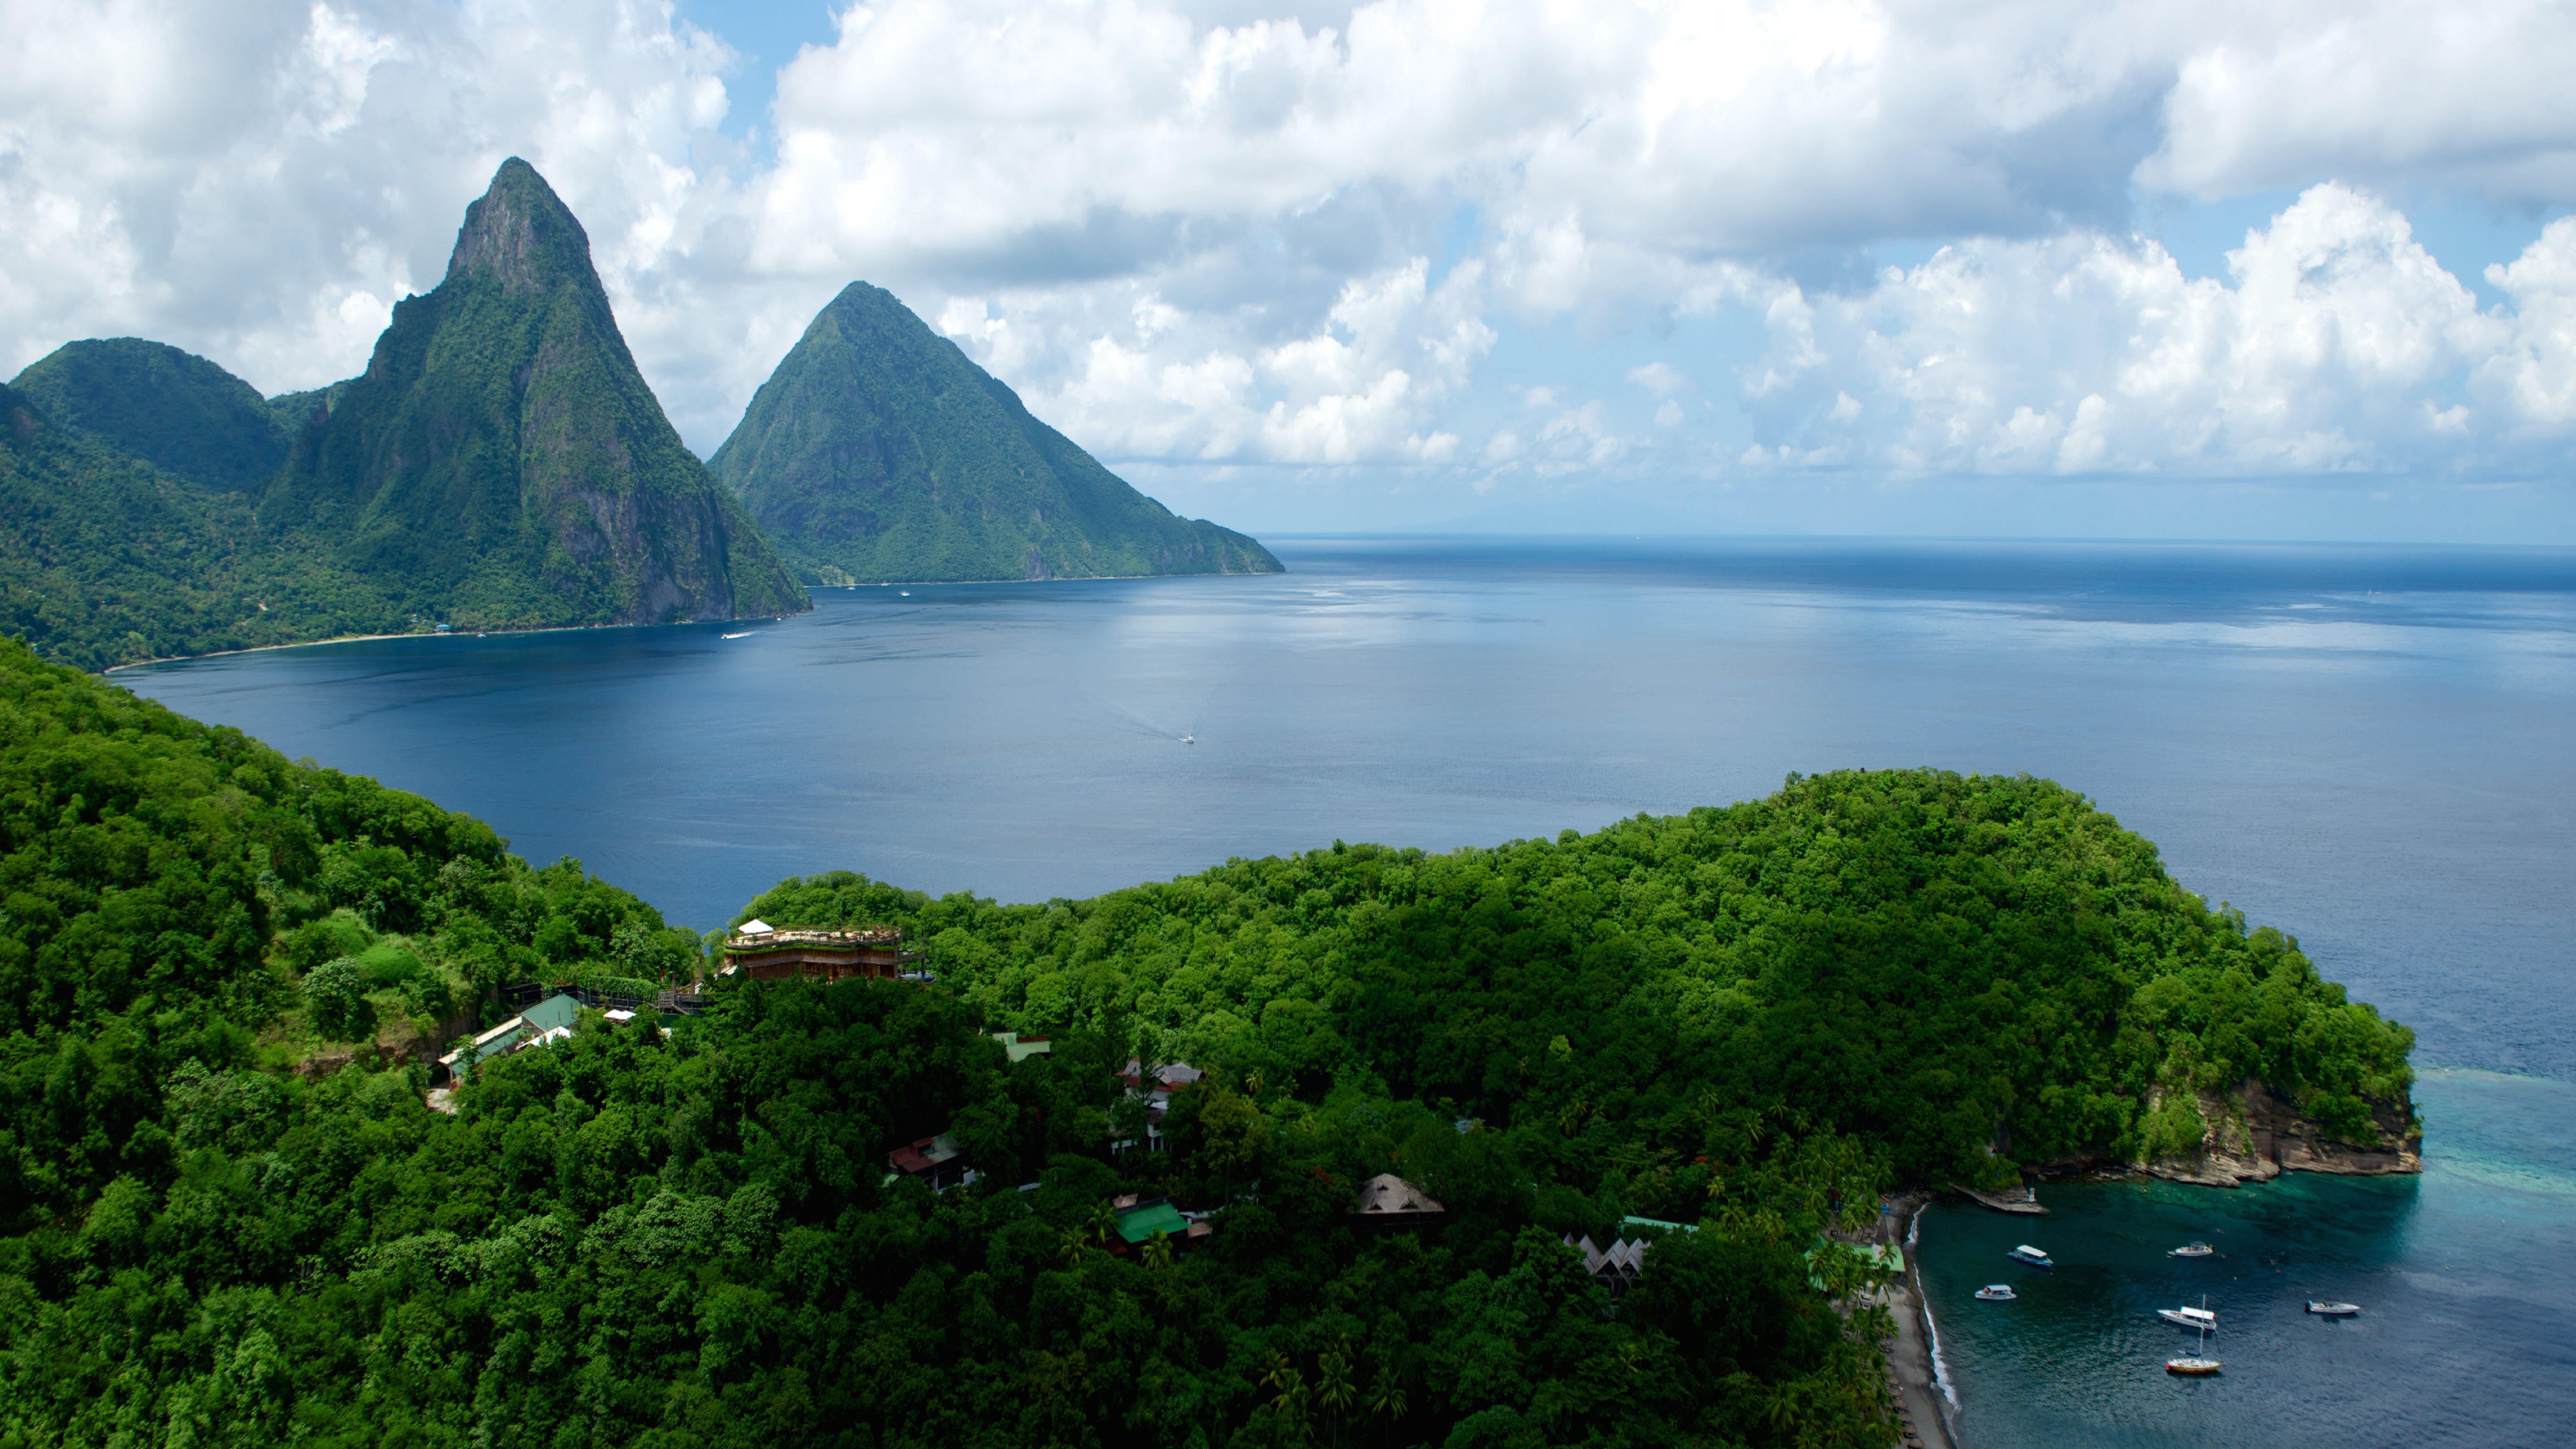 Saint Lucia 8K Wallpapers